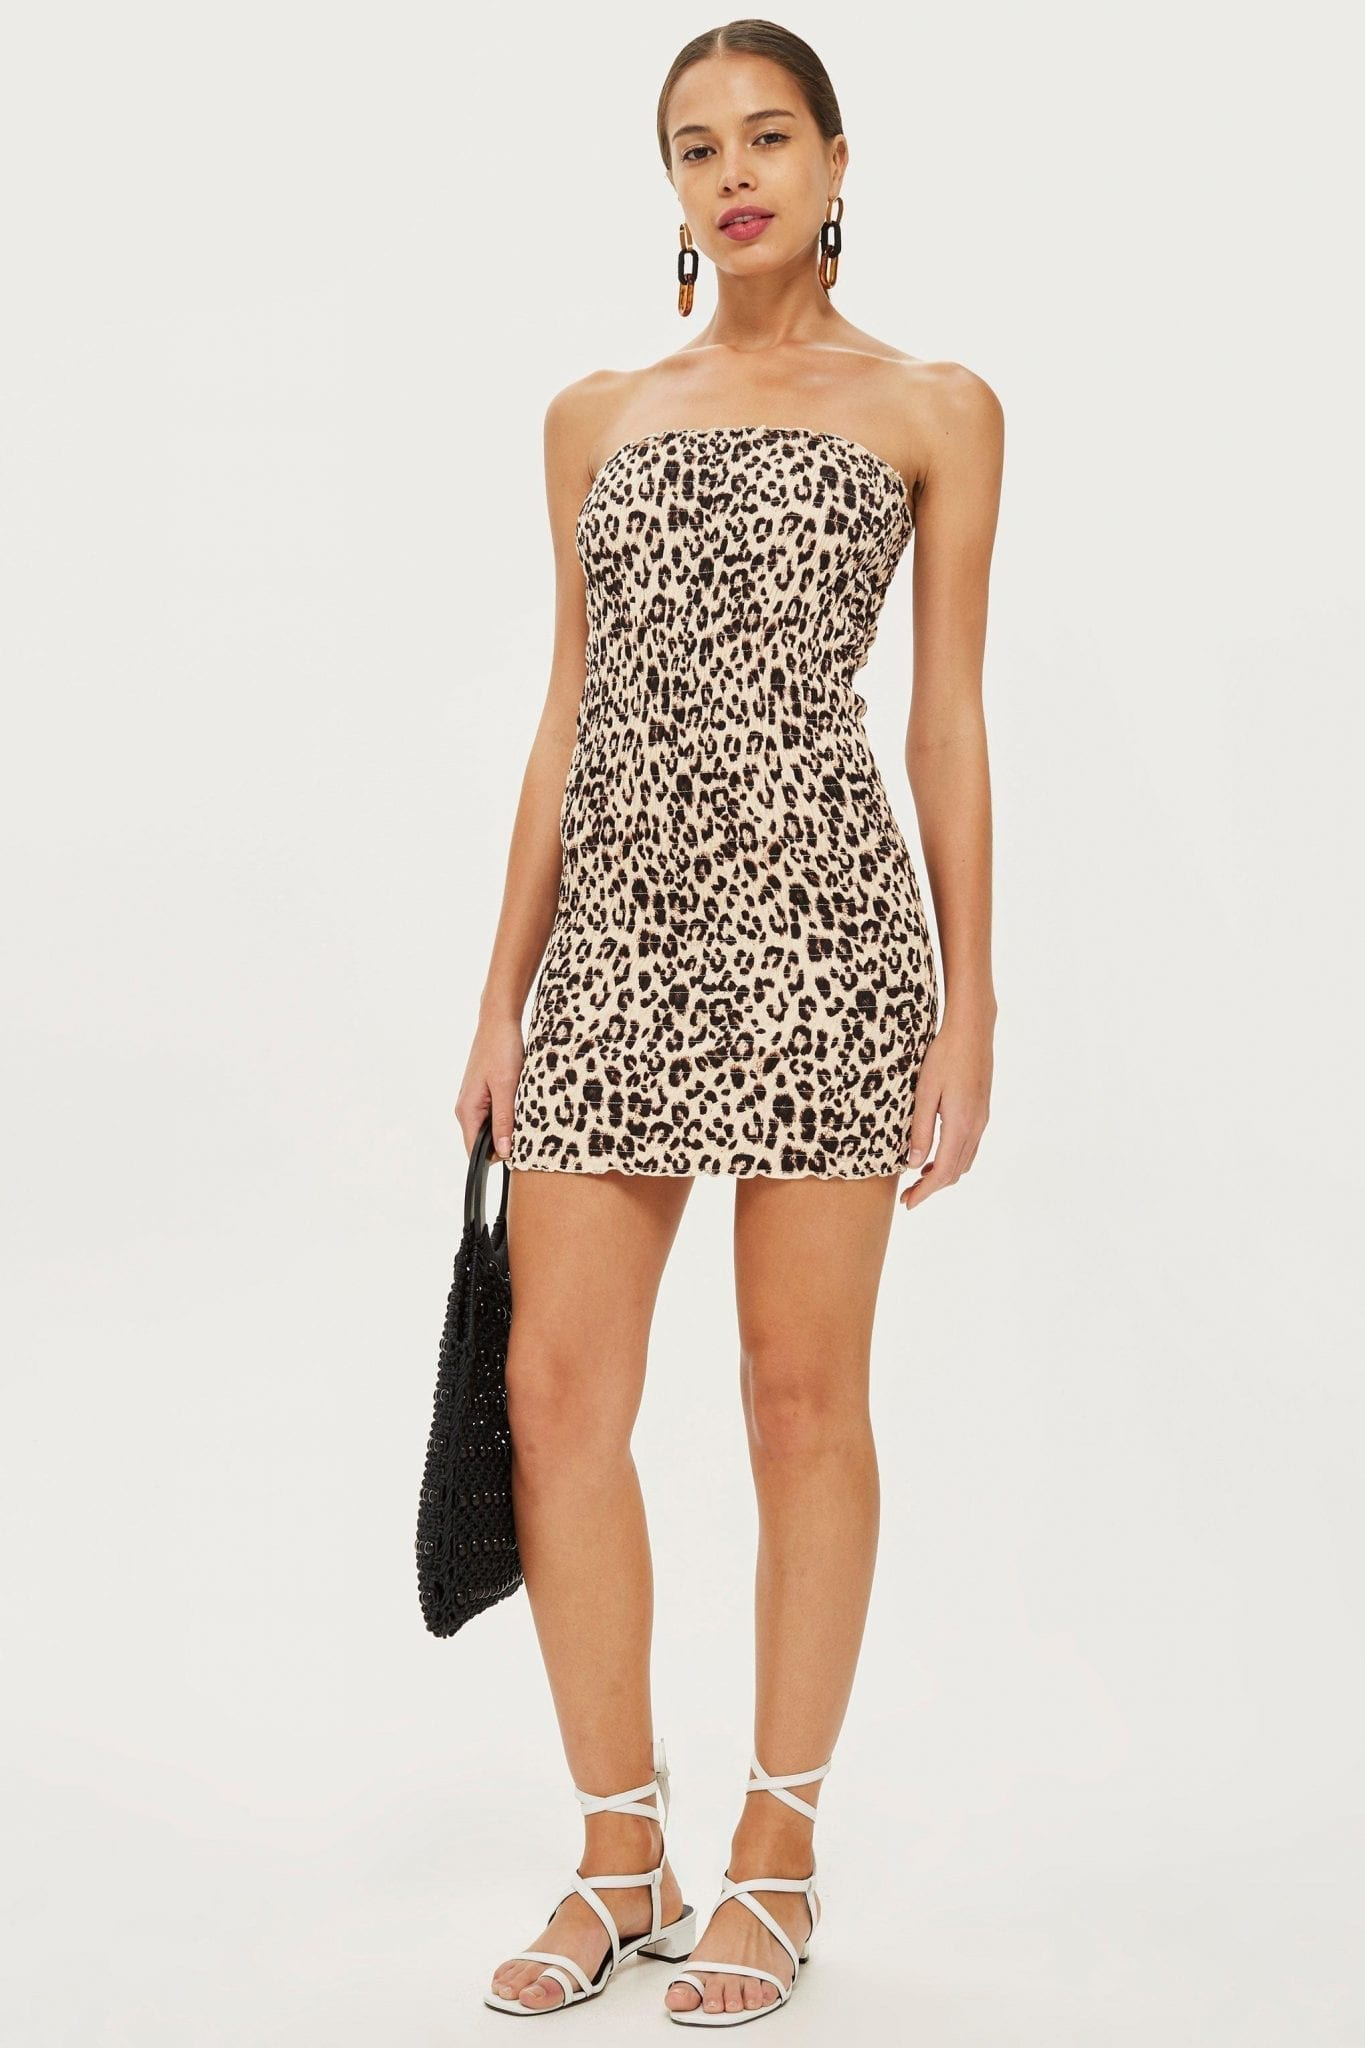 PETITE Leopard Bandeau Bodycon Tan Dress